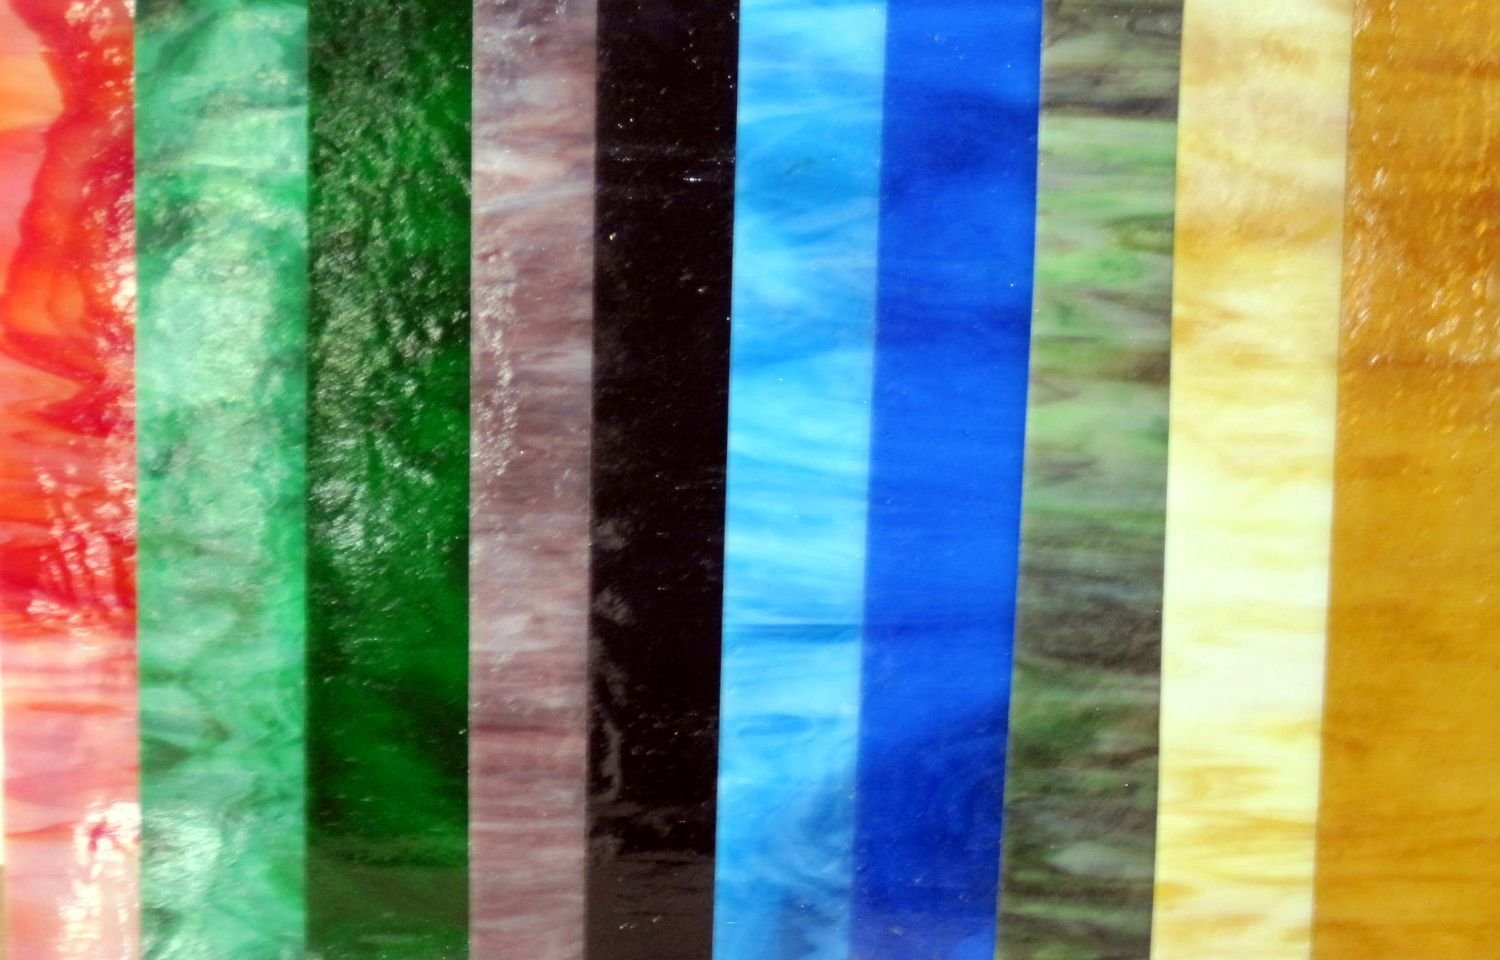 10 Sheets Spectrum & Wissmach Sheets for Stained Glass and Mosaic Works by Sun and Moon Stained Glass (Image #2)